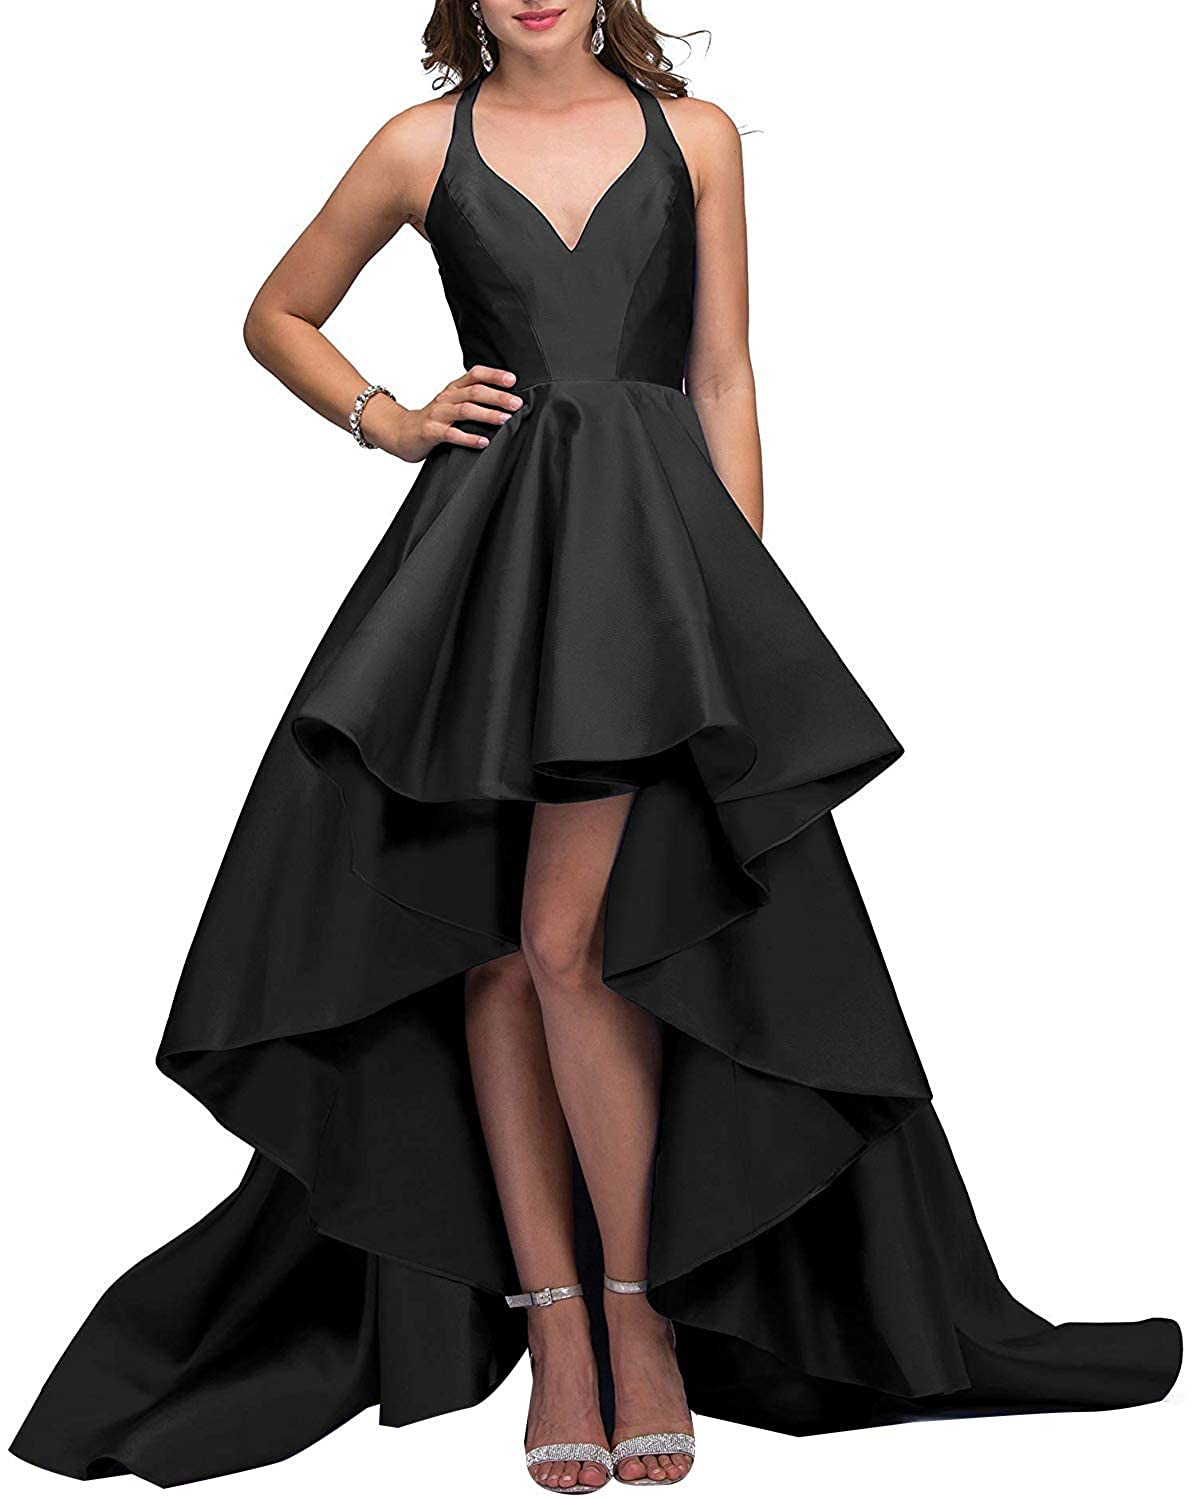 Black V Neck Prom Gowns High Low Satin 2019 Open Back Formal Evening Dreses for Women